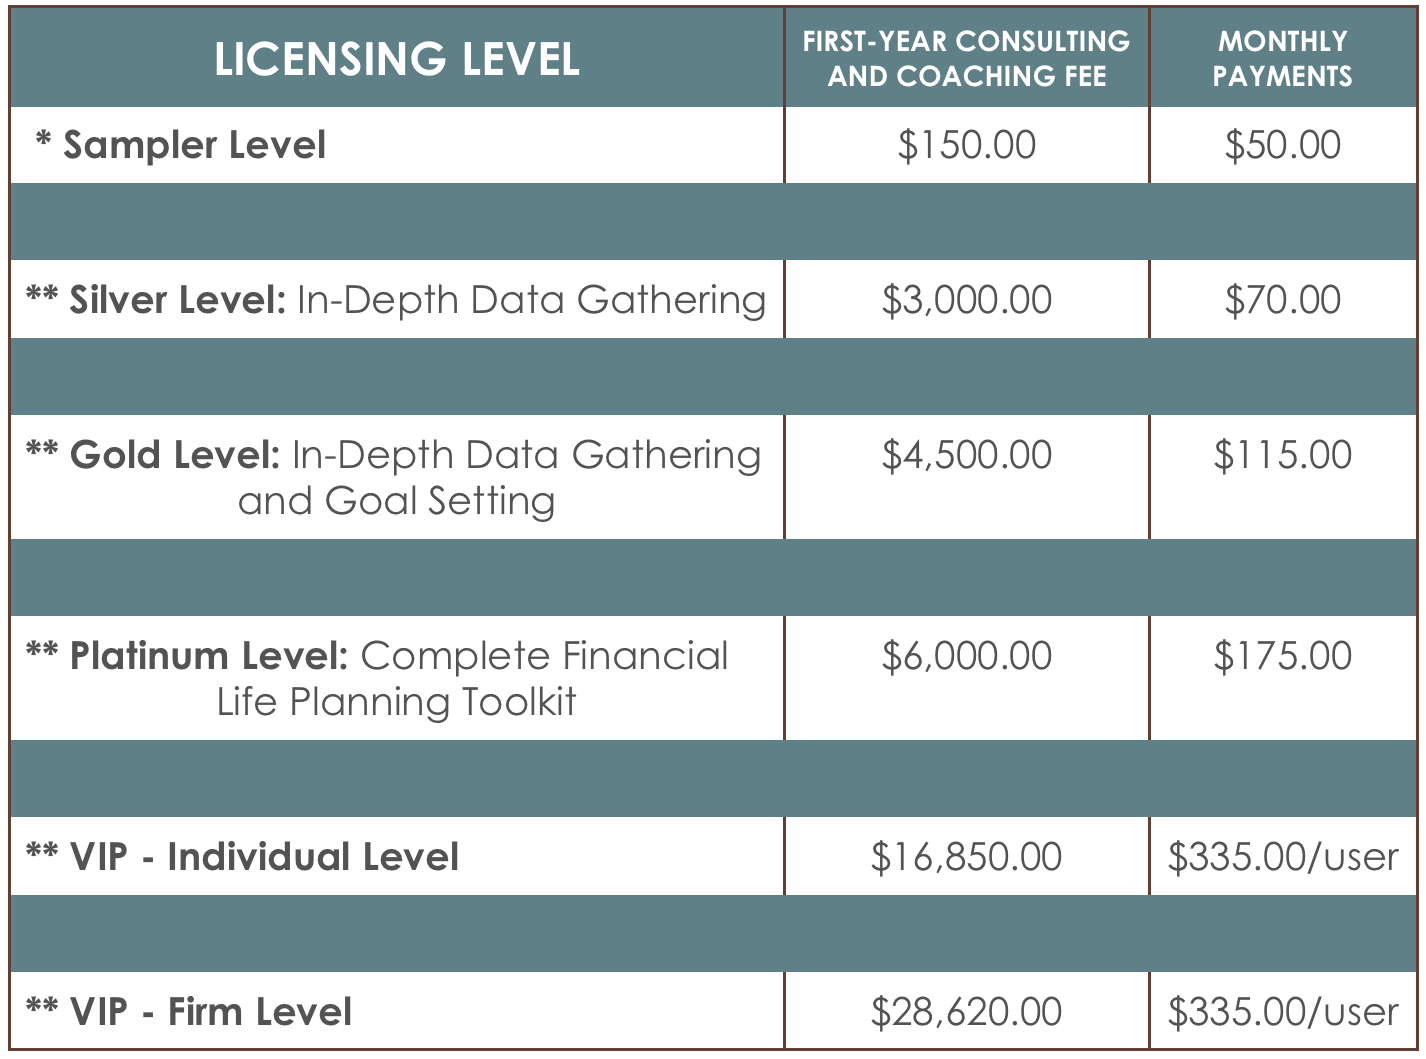 Firm discounts apply to monthly licensing fees when 2 or more advisors from the same firm license Levels 2, 3 or 4. The minimum number of Licensees required to receive a firm discount are as follows: 2-3 advisors – 25% discount; 4 or more advisors – 35% discount.